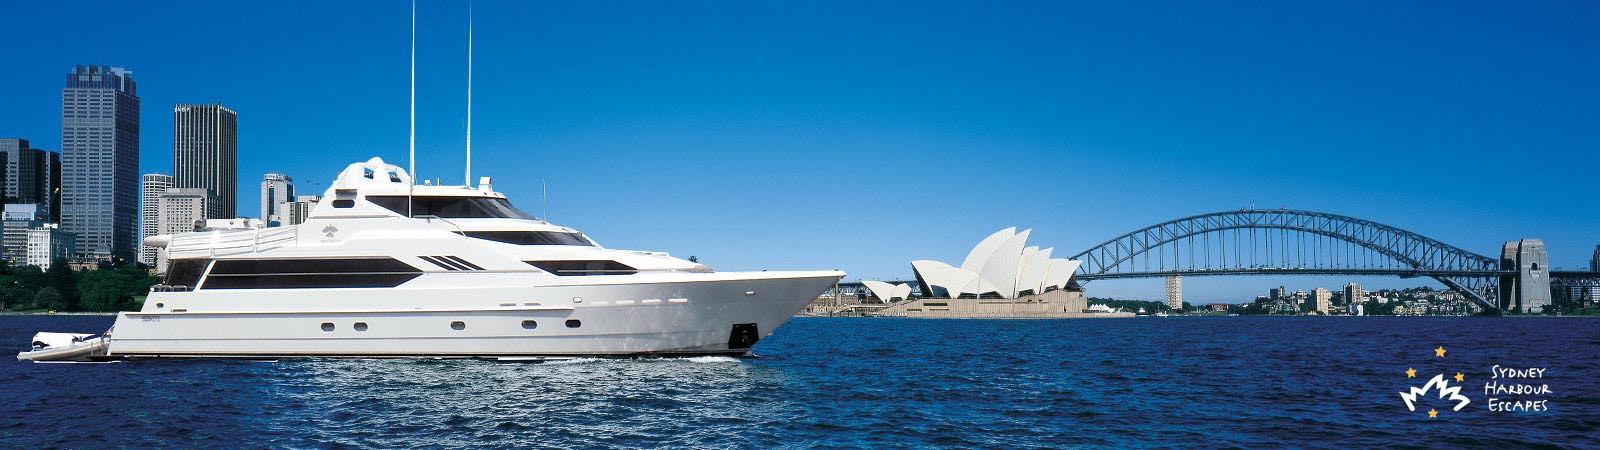 Luxury Private Harbour Cruise